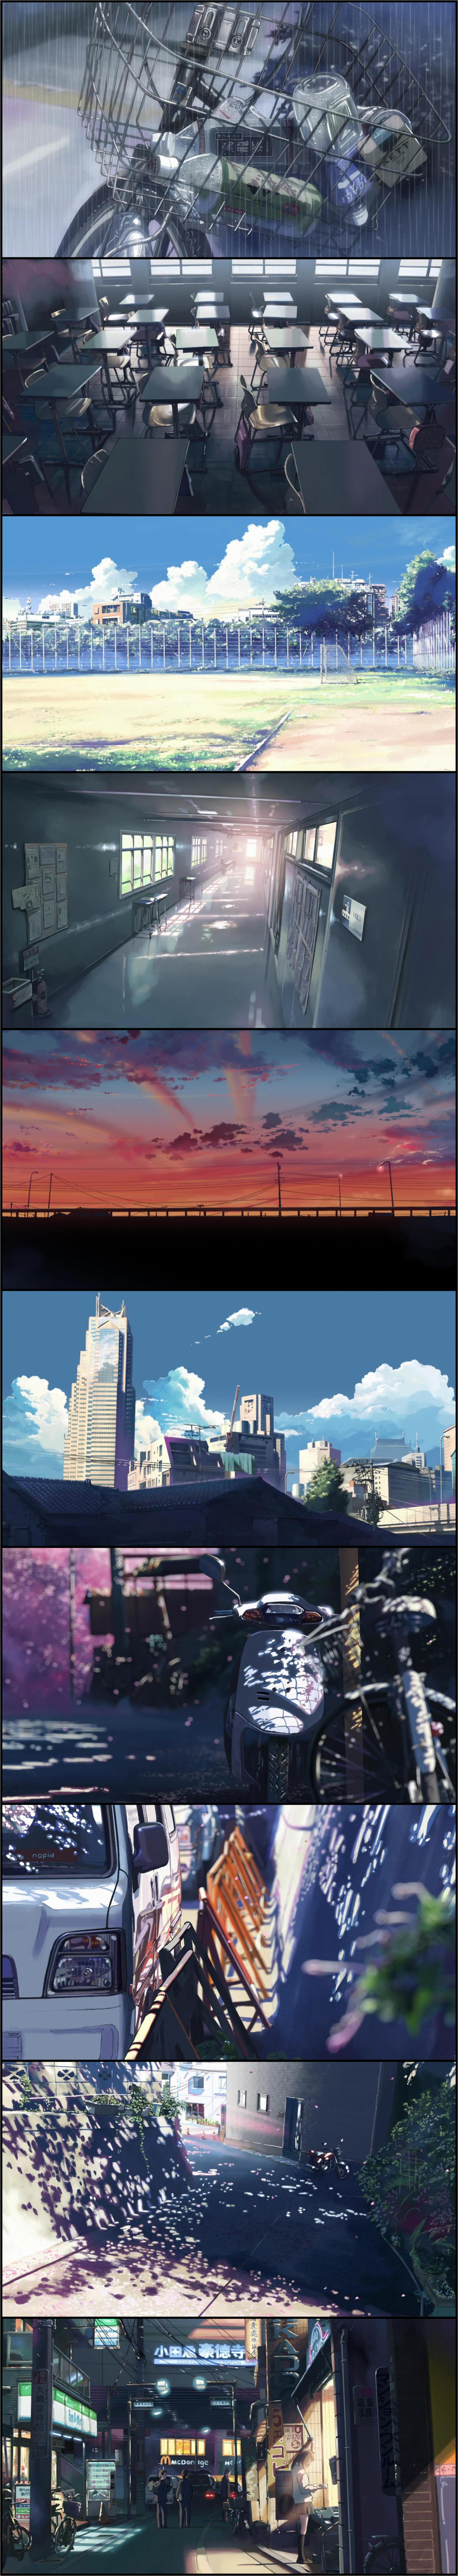 5 Centimeters Per Second. Directed by Makoto Shinkai